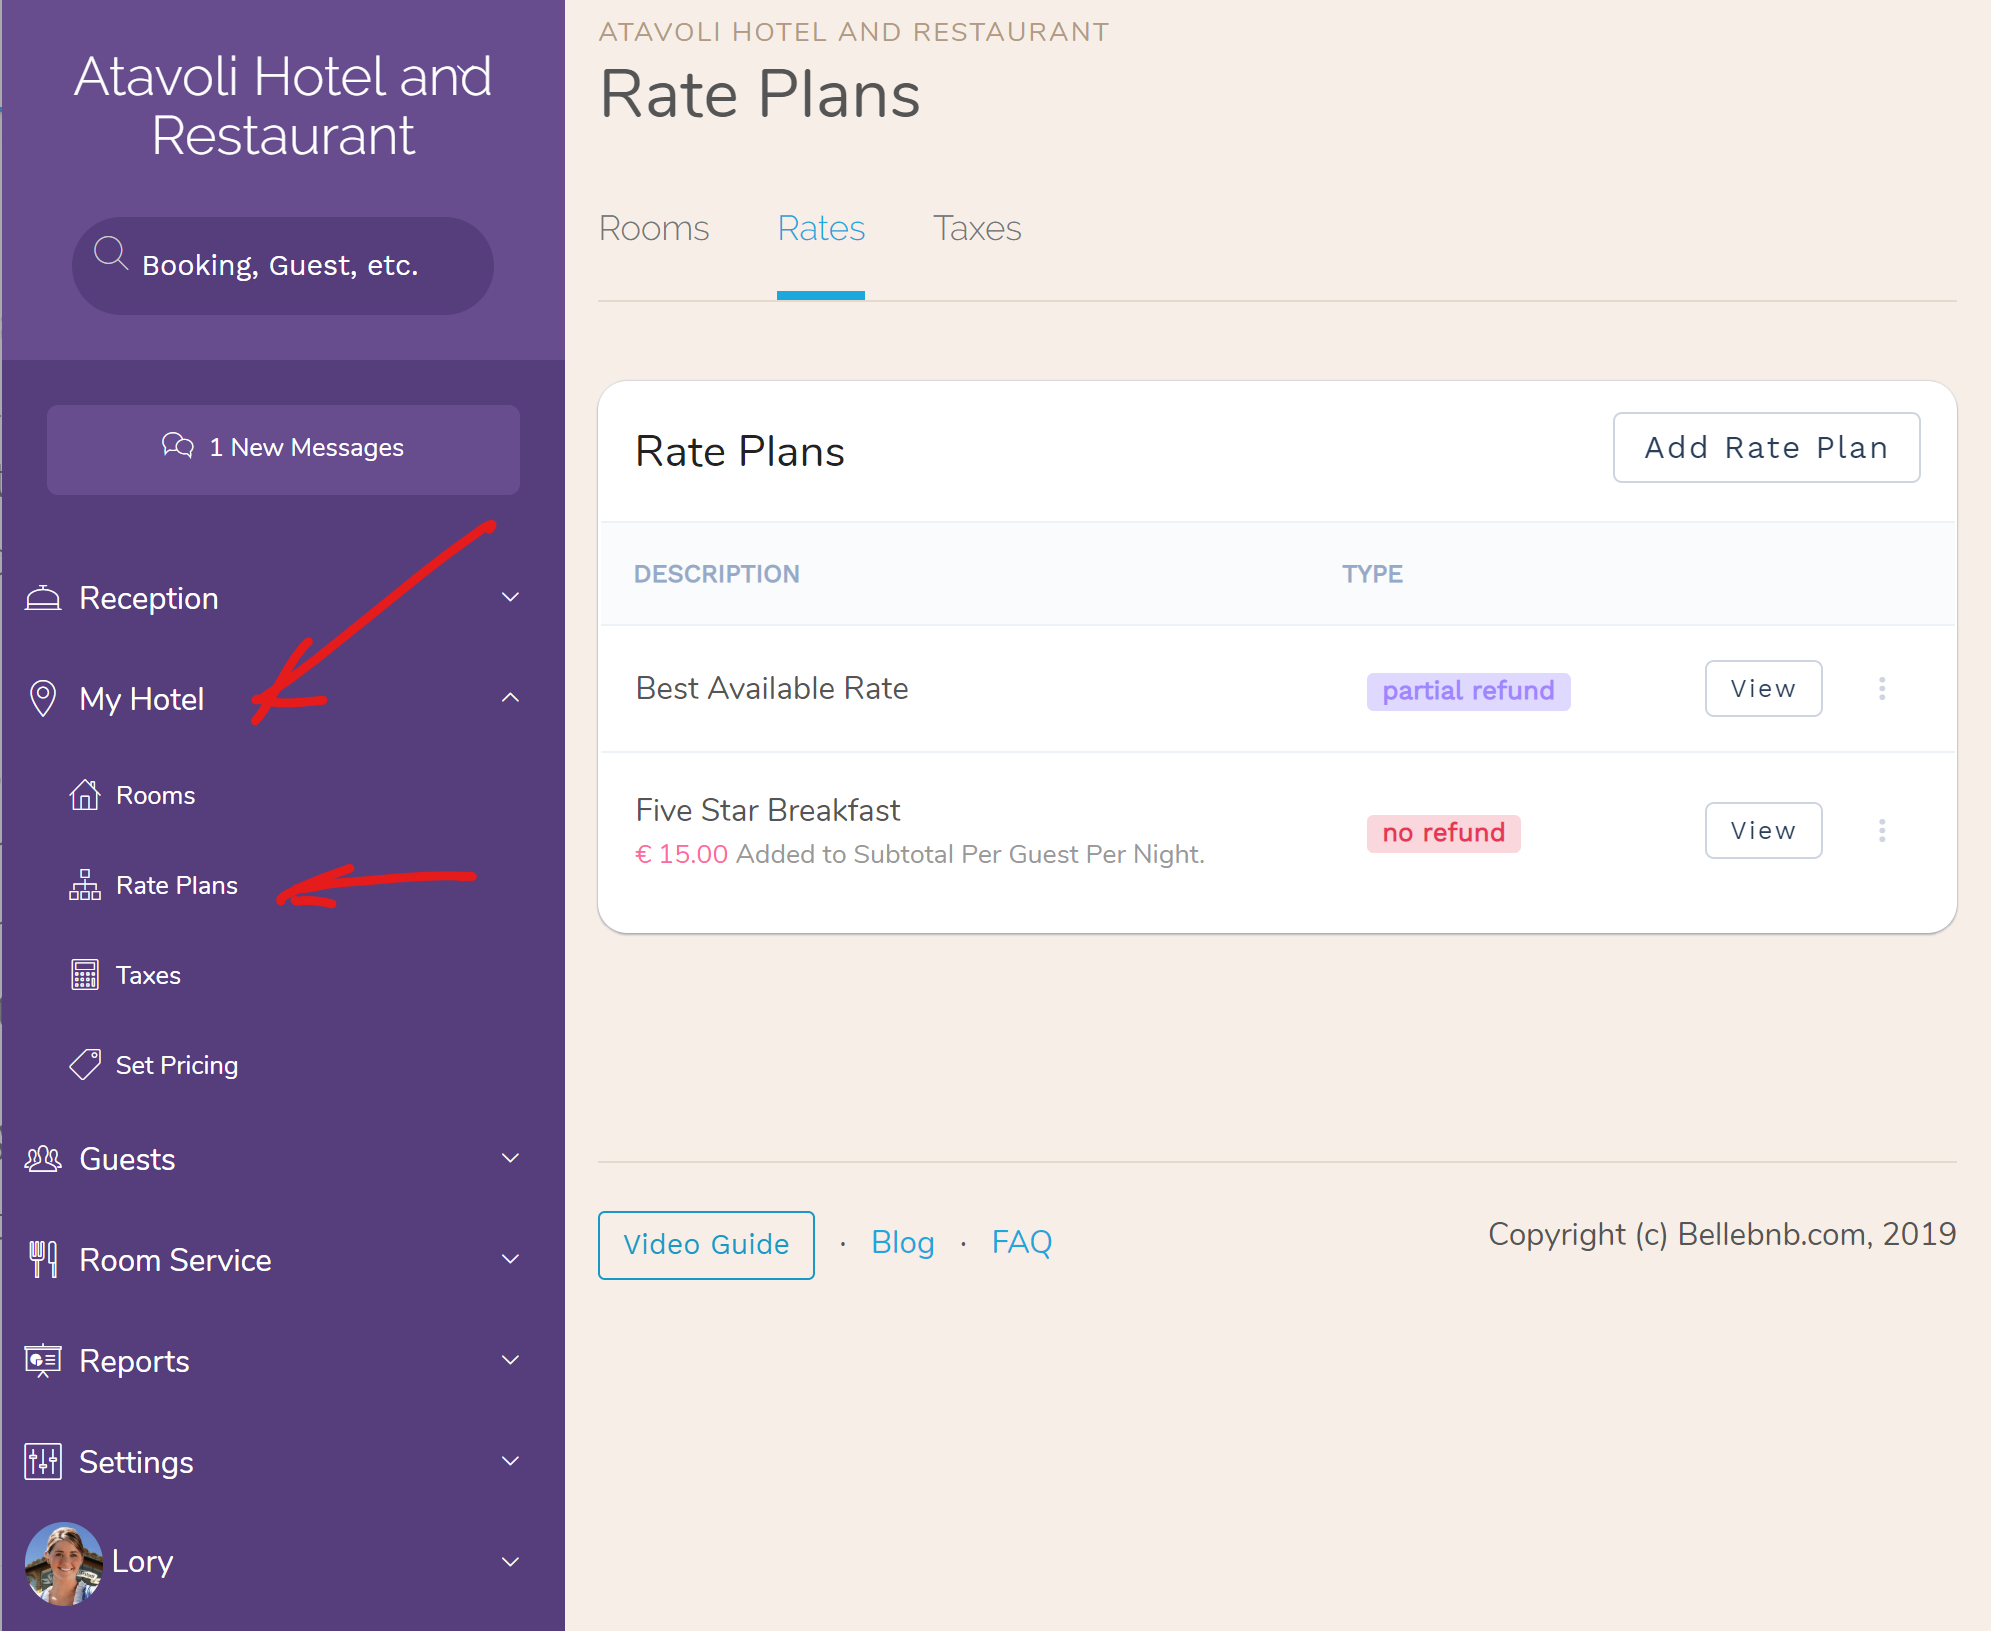 Hotel Value-added/Per Guest Rate Plans